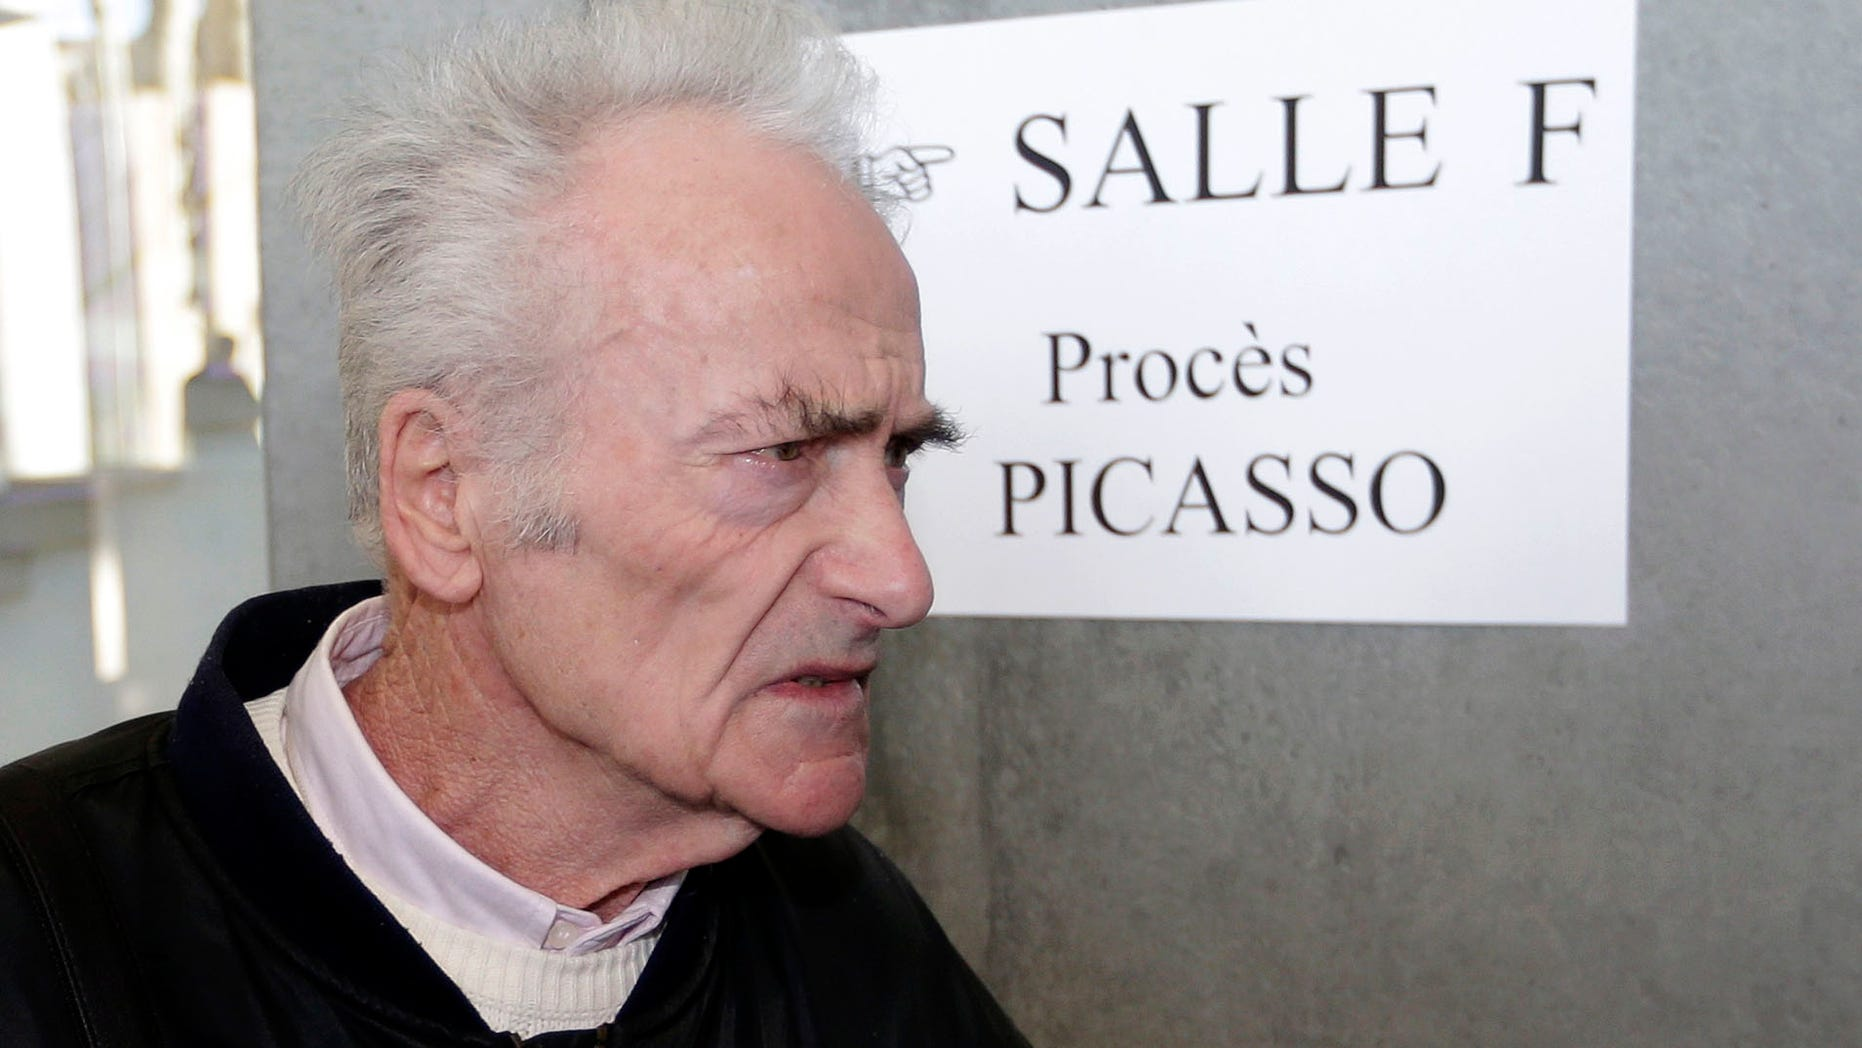 Pierre Le Guennec, 75, a retired electrician, arrives at Grasse criminal court, Tuesday, Feb. 10, 2015, in Grasse, southeastern France. Would Picasso have donated 271 works to an electrician who worked for him for a few years in southeast France? A French court began to contemplate that mystery on Tuesday at the start of a three-day trial of Pierre Le Guennec (Luh Gehn-EK) and his wife, Danielle. They claim that the artist, or his wife, gave them the 180 lithographs, collages and paintings and 91 drawings around 1970 when Le Guennec began working as a general handyman at Picasso's estate. (AP Photo/Lionel Cironneau)